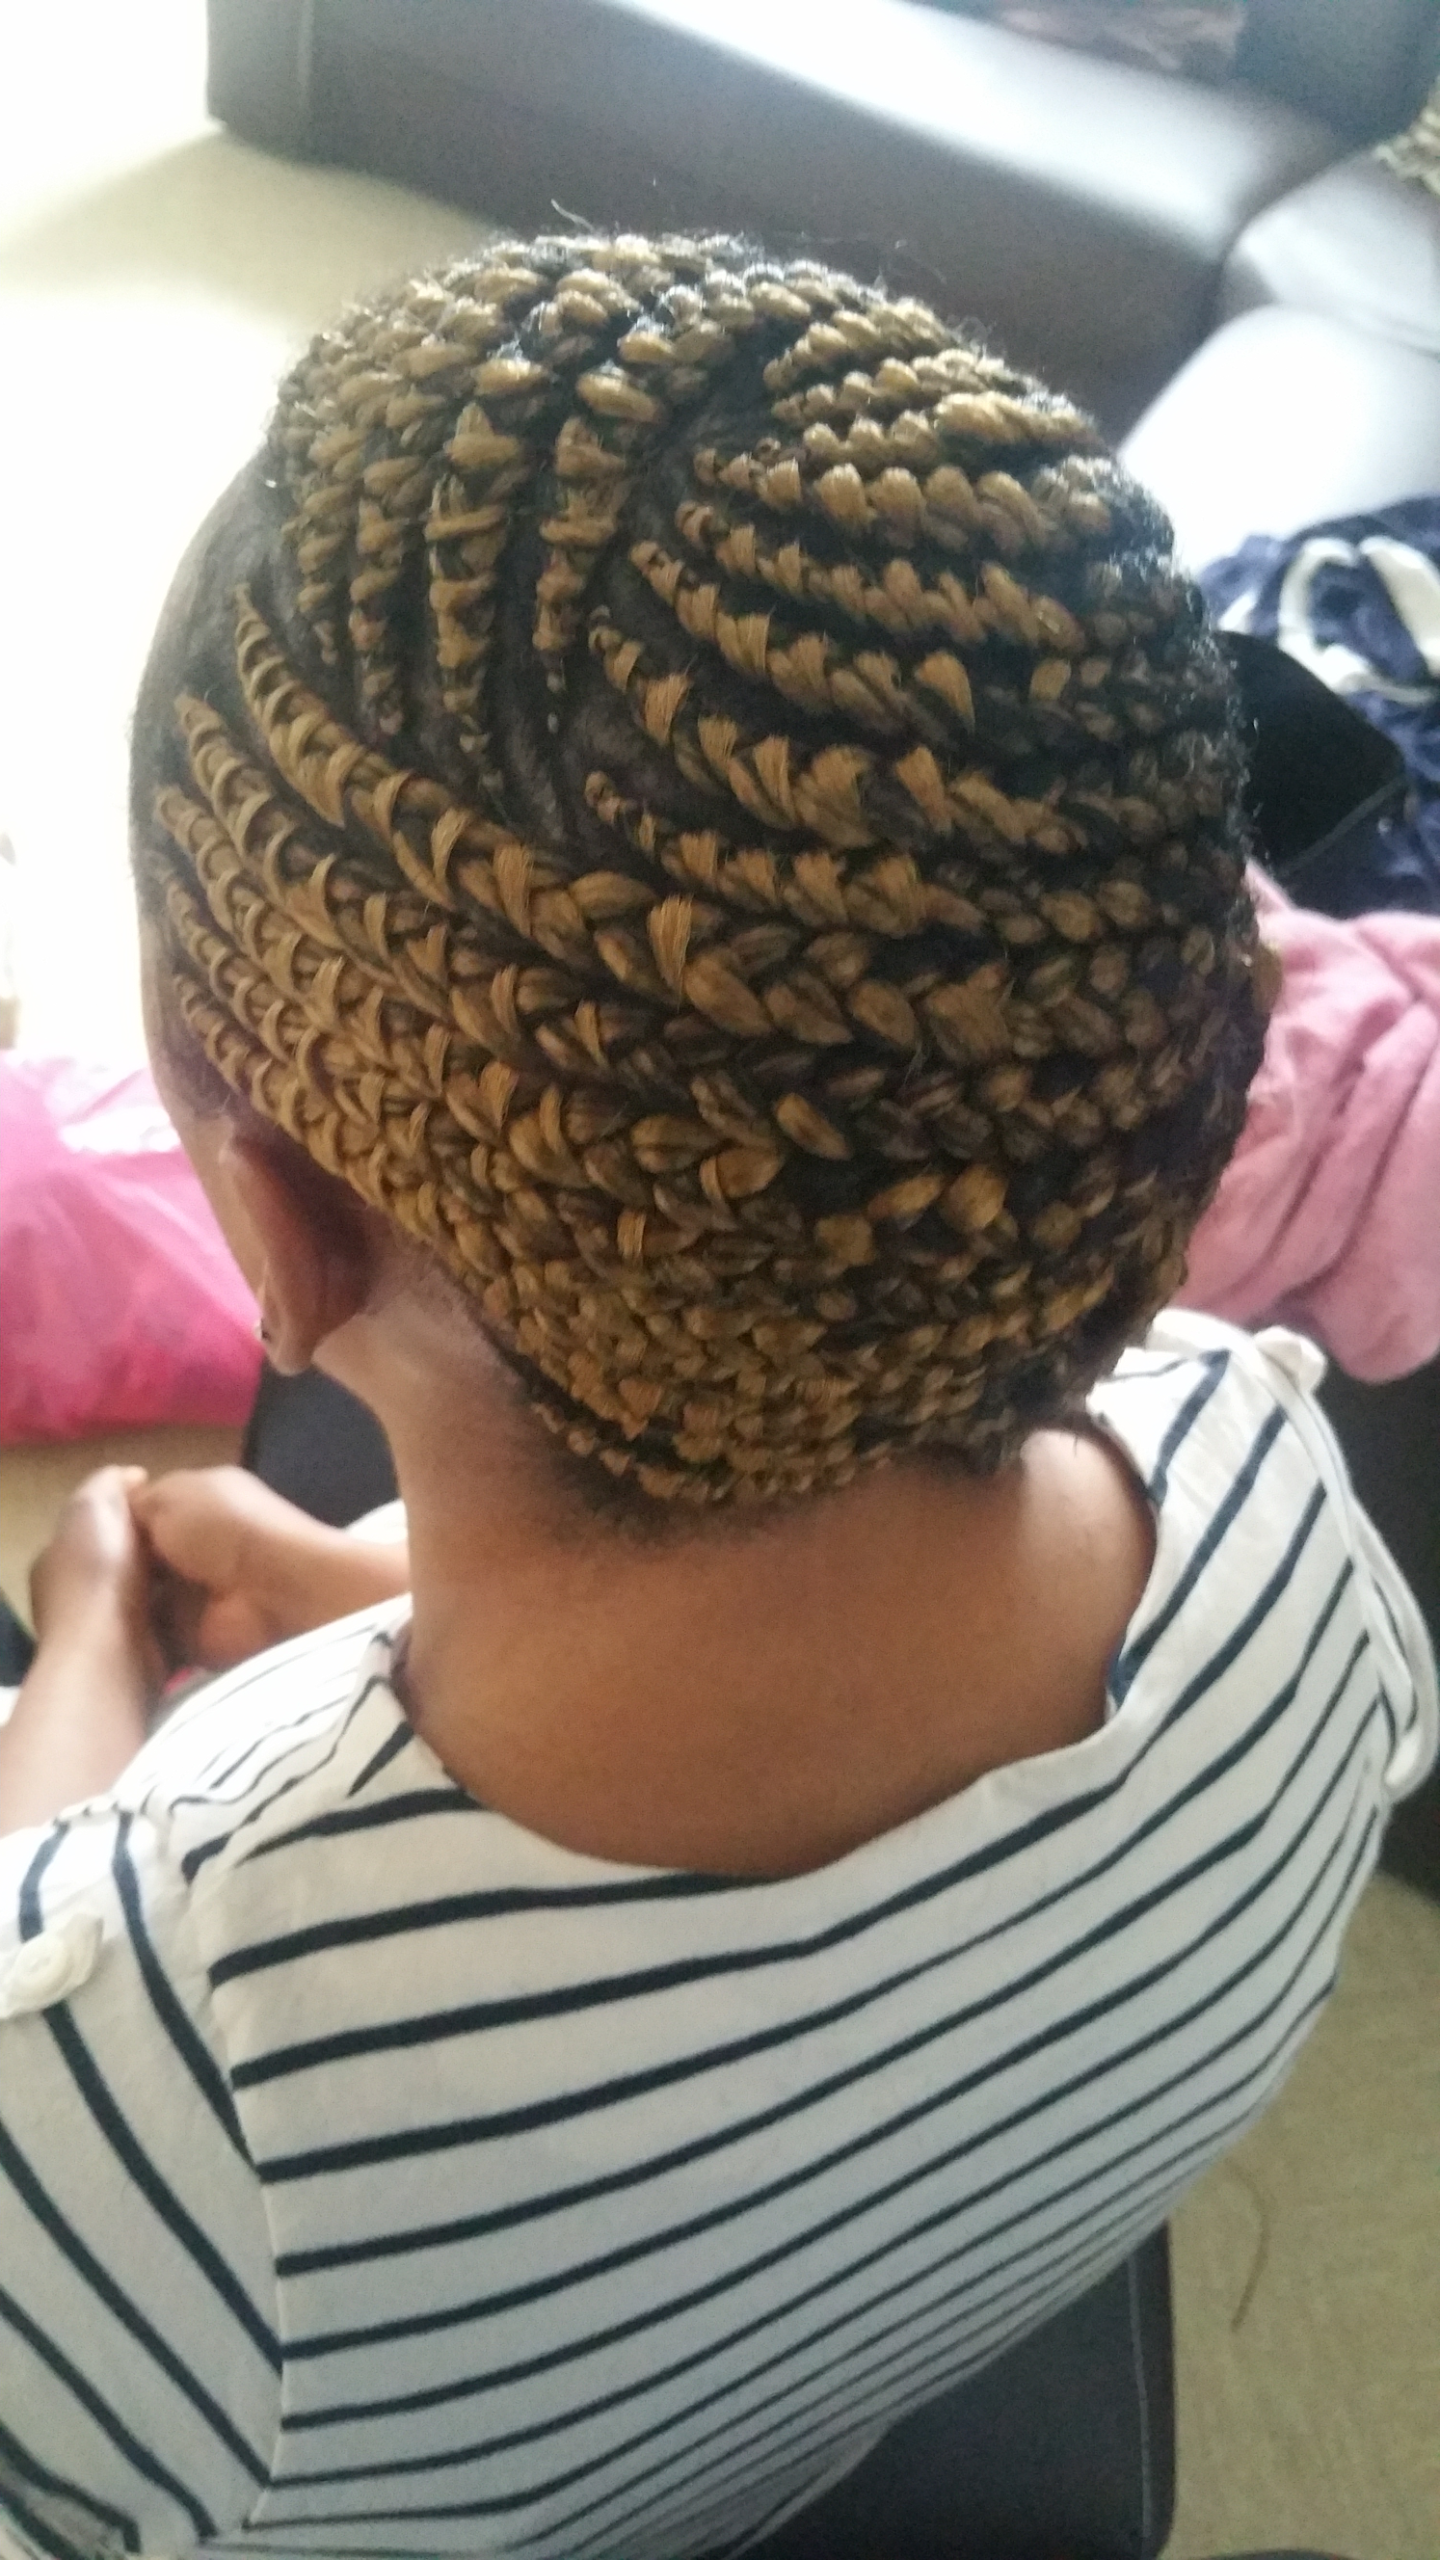 salon de coiffure afro tresse tresses box braids crochet braids vanilles tissages paris 75 77 78 91 92 93 94 95 ZNLIMKIW